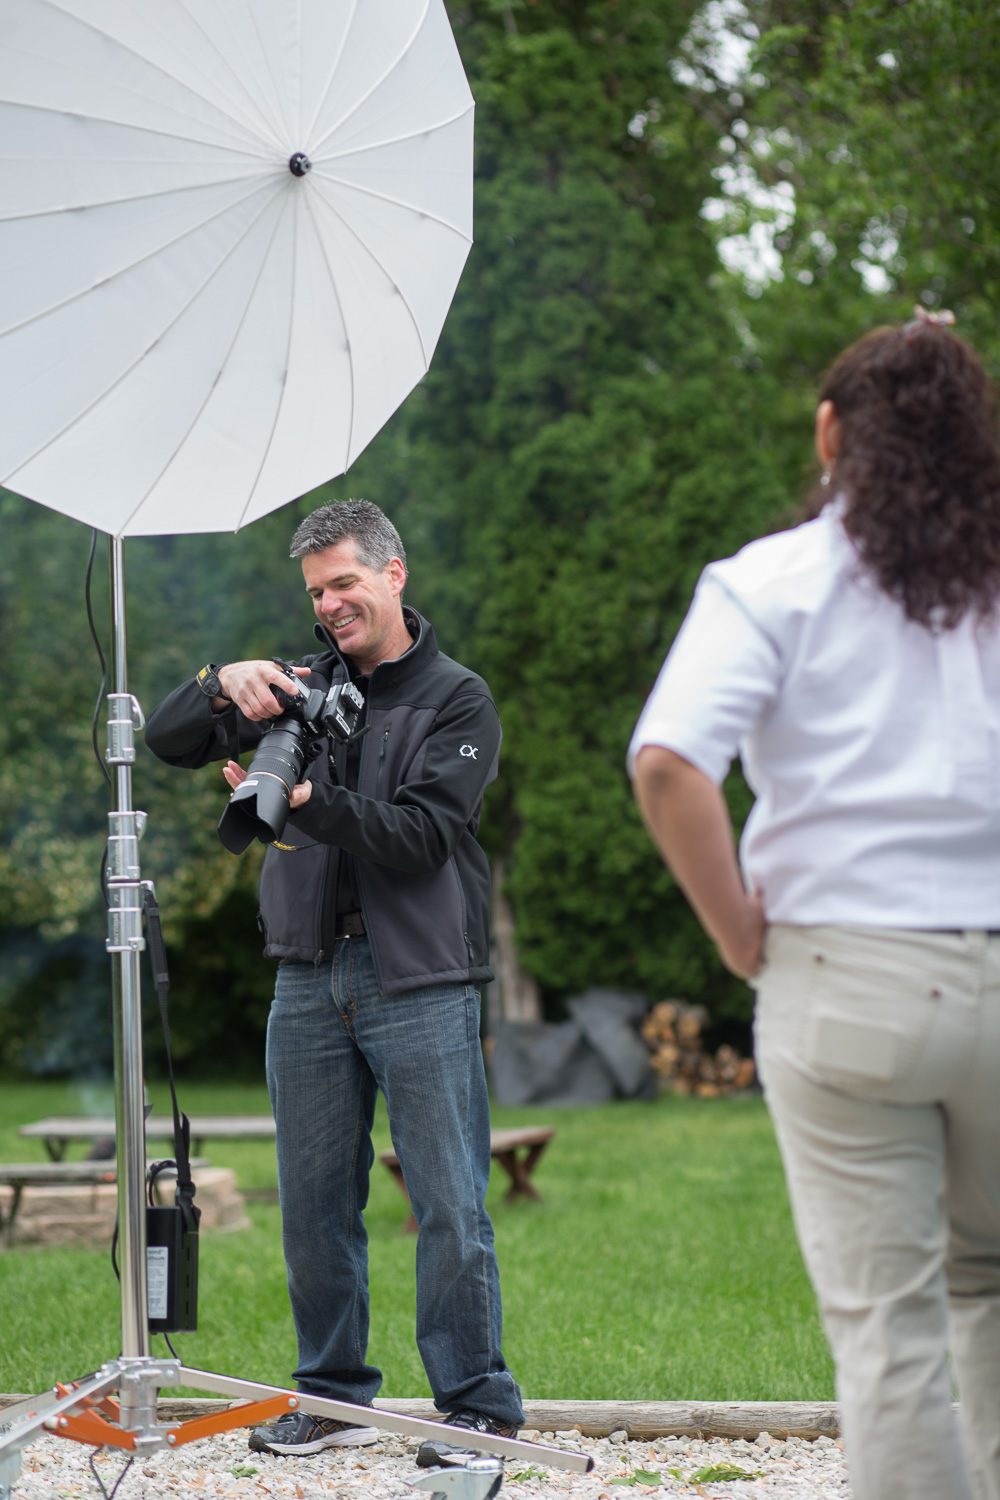 Commercial Photography Behind The Scenes at A&D in Indianapolis - Head Shots